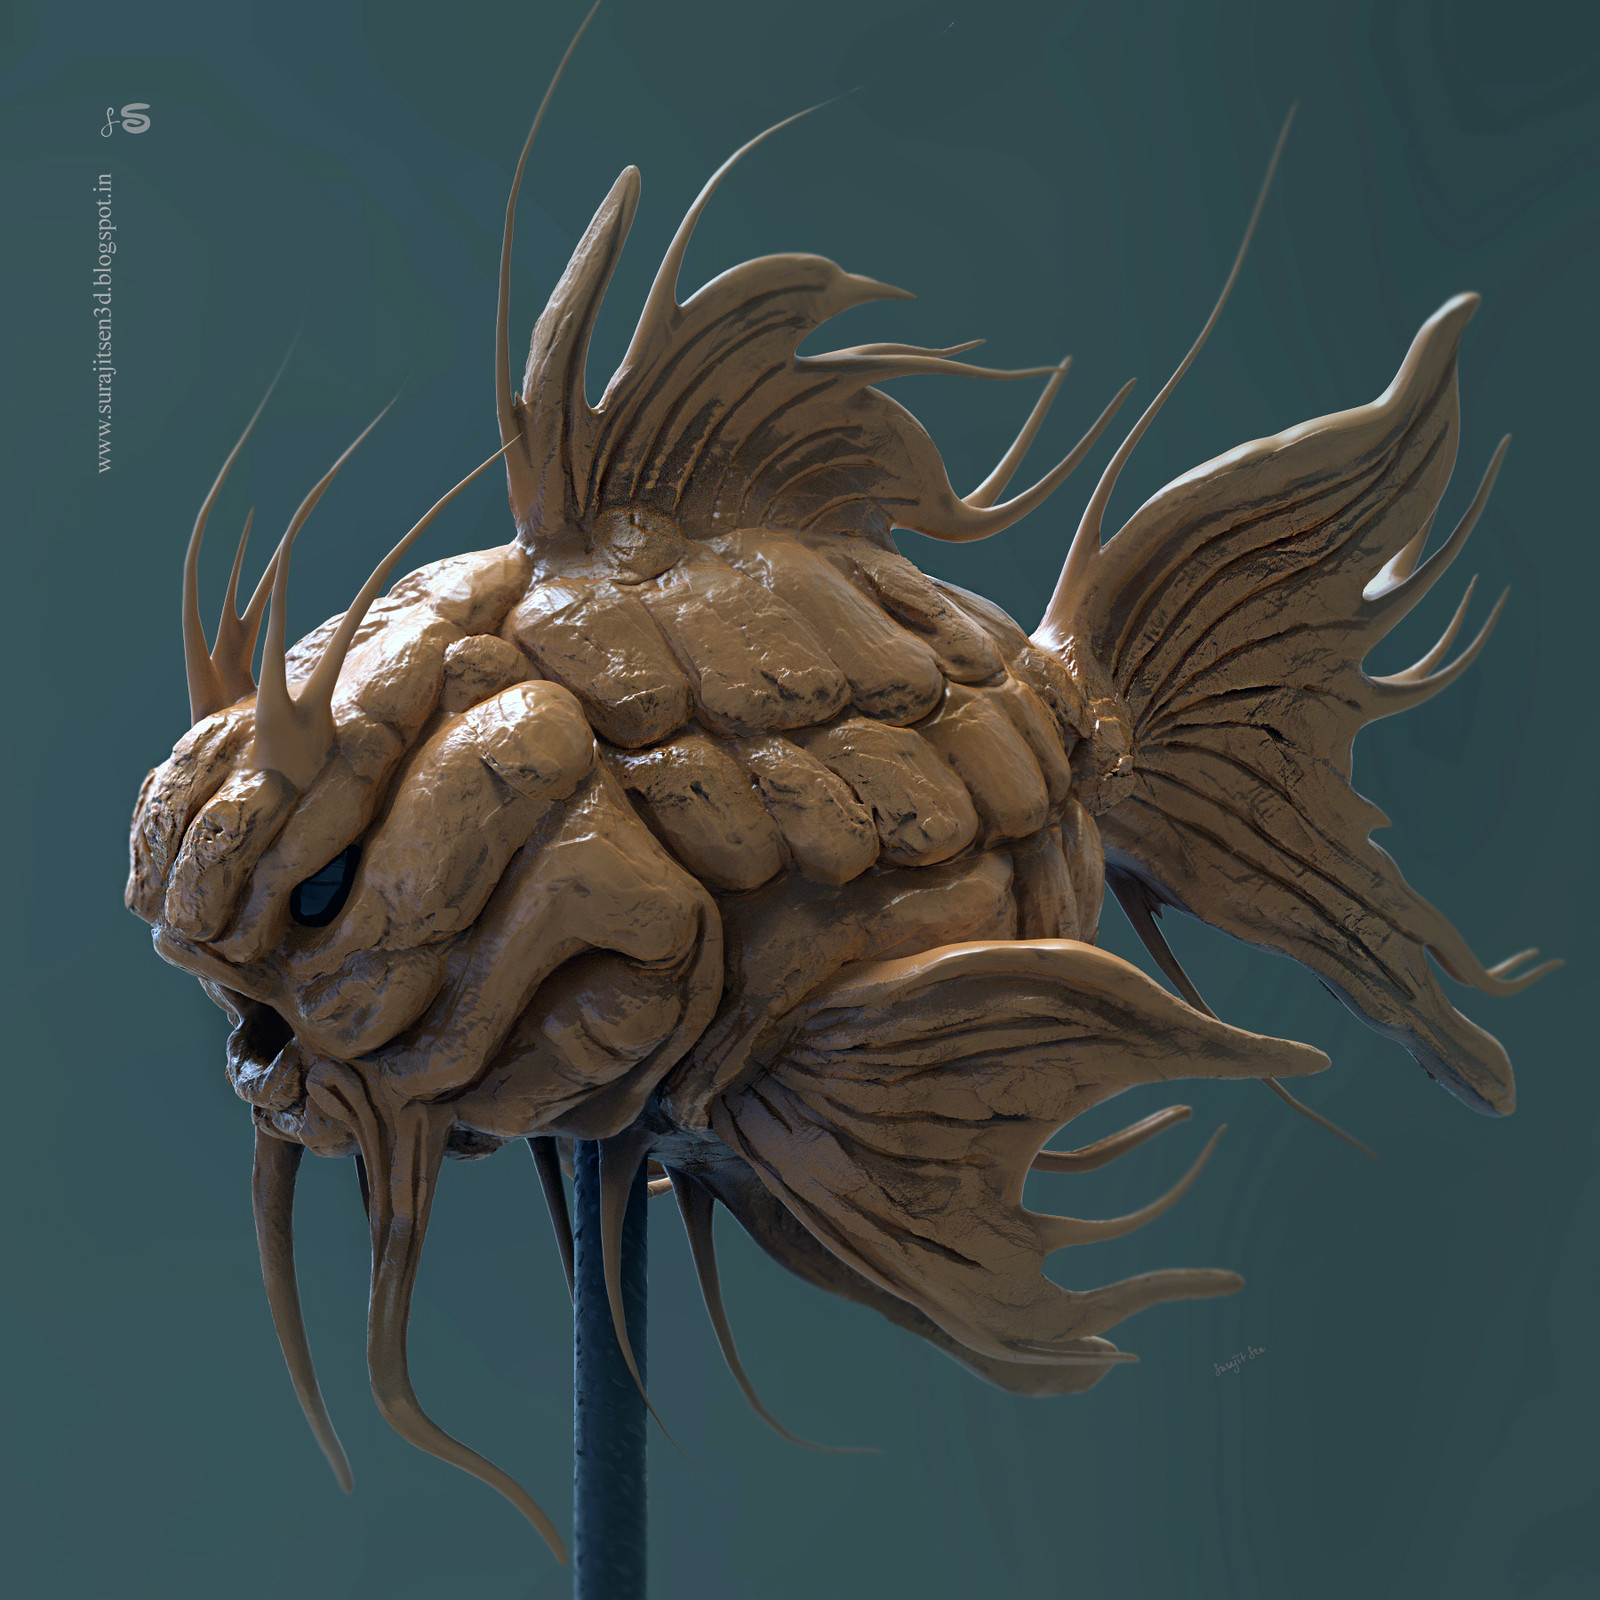 """Today I tried to make a form of my thoughts. ...""""Dracon"""". Wish to share my speed Digital sculpt study. ..."""